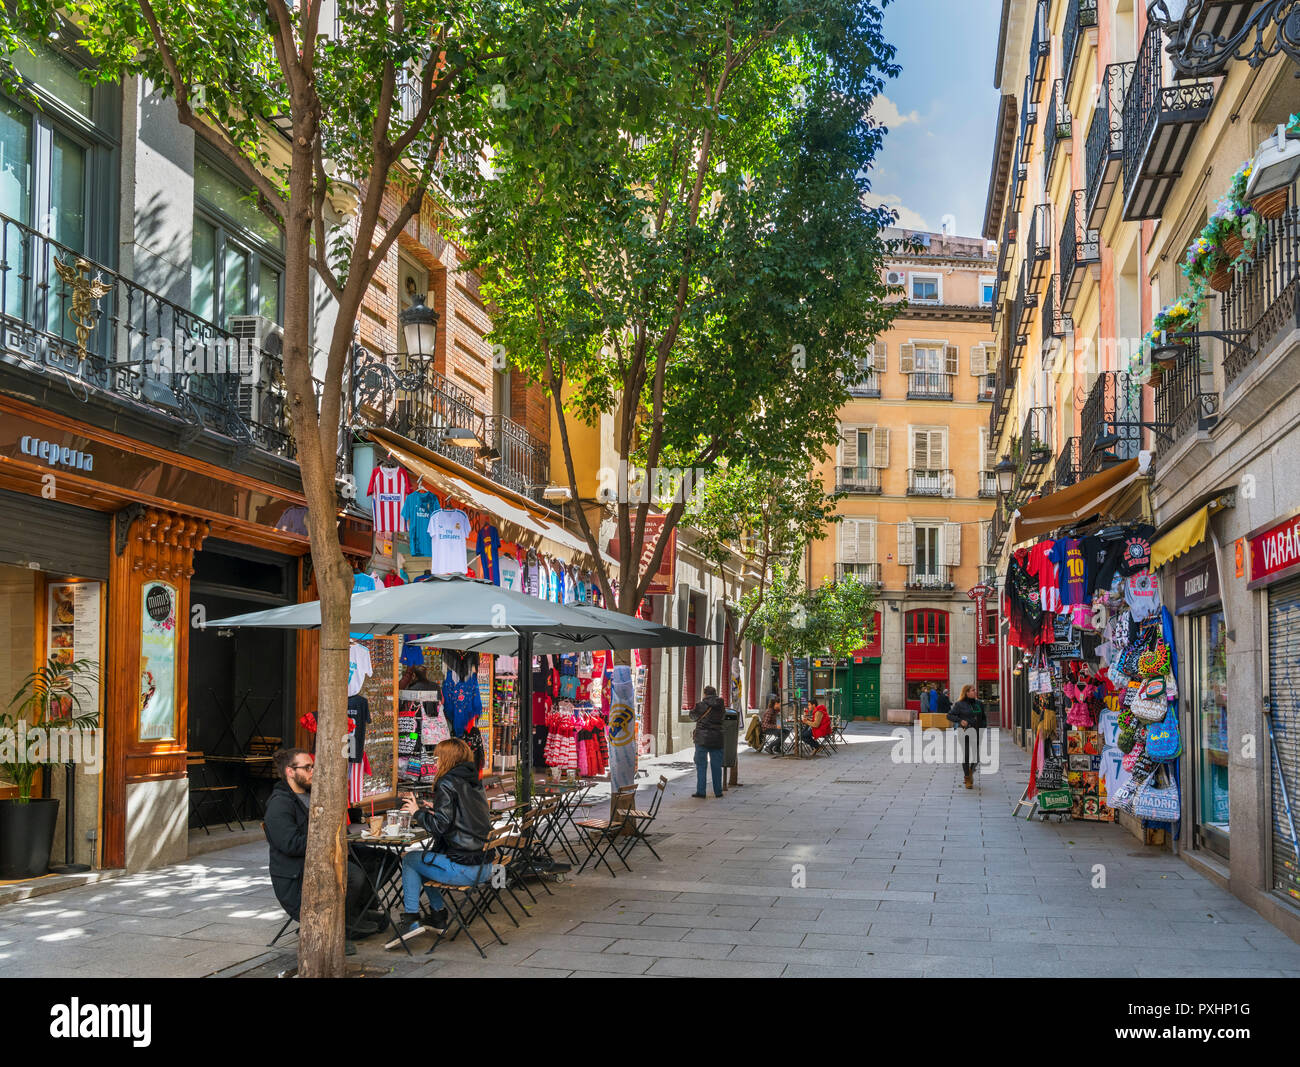 Cafe and shops on Calle Postas in the city centre, Madrid, Spain - Stock Image